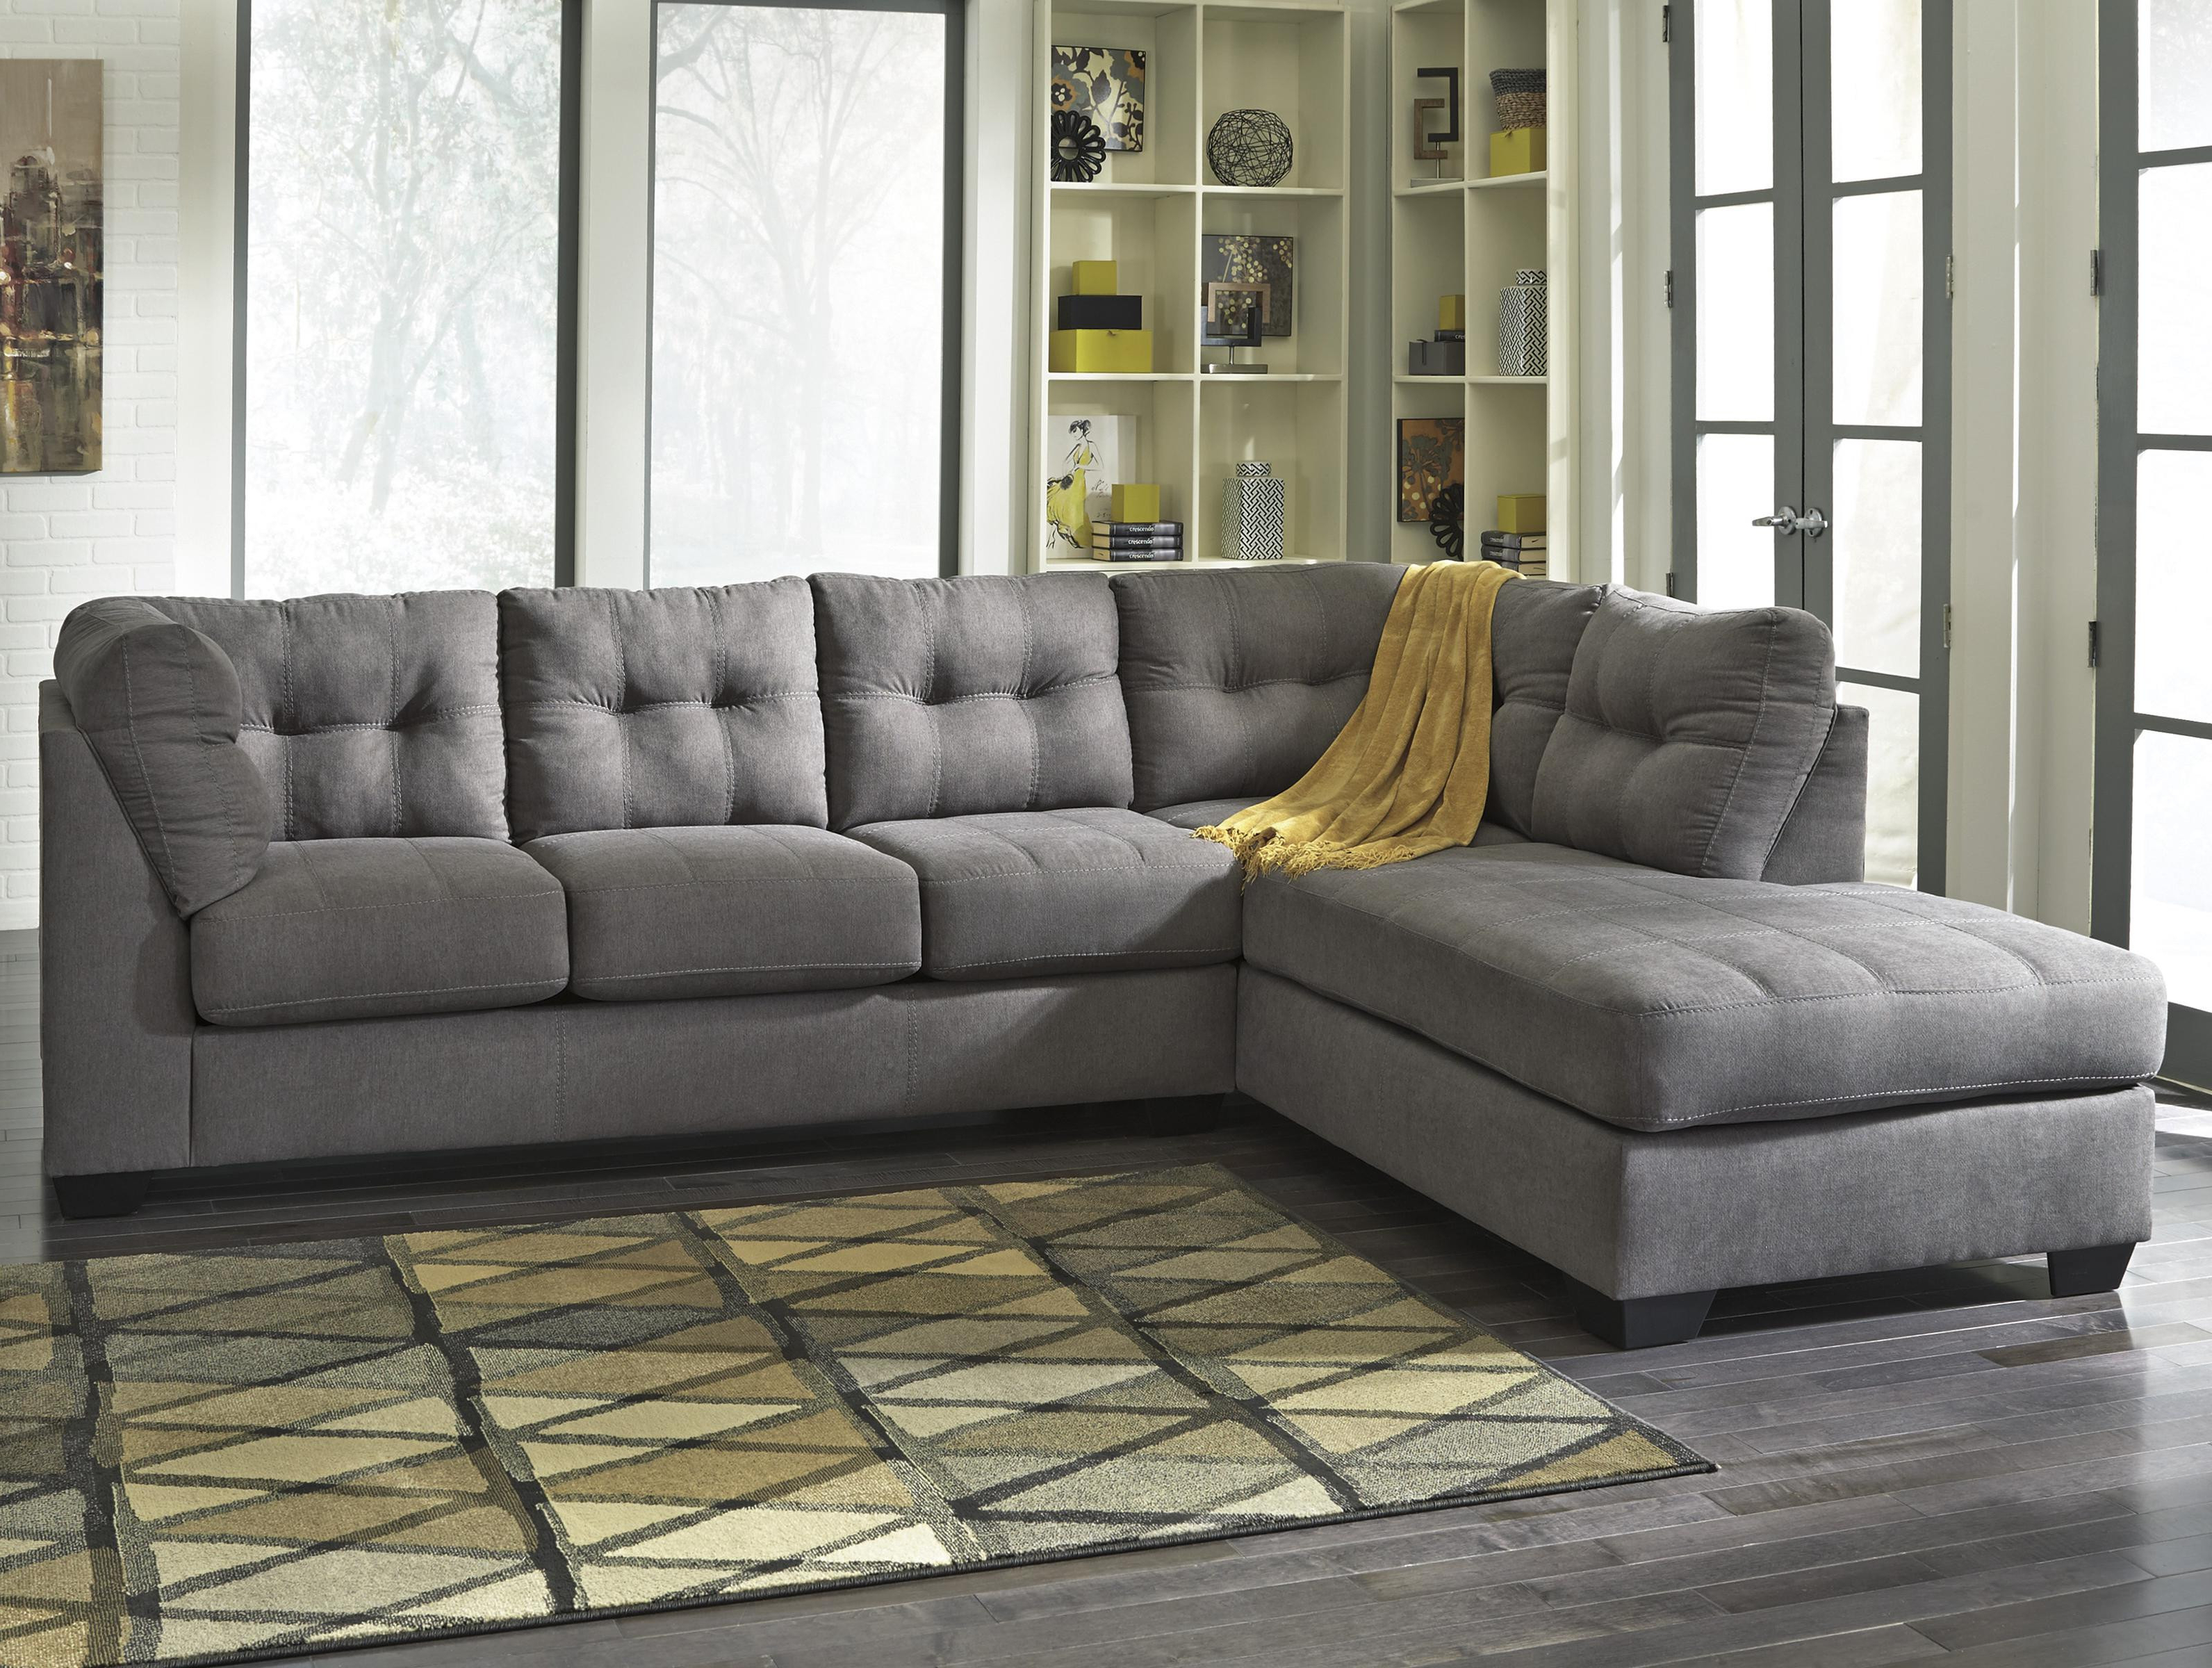 New 2 Piece Sectional With Chaise Lounge – Buildsimplehome In Favorite Jobs Oat 2 Piece Sectionals With Left Facing Chaise (View 15 of 20)